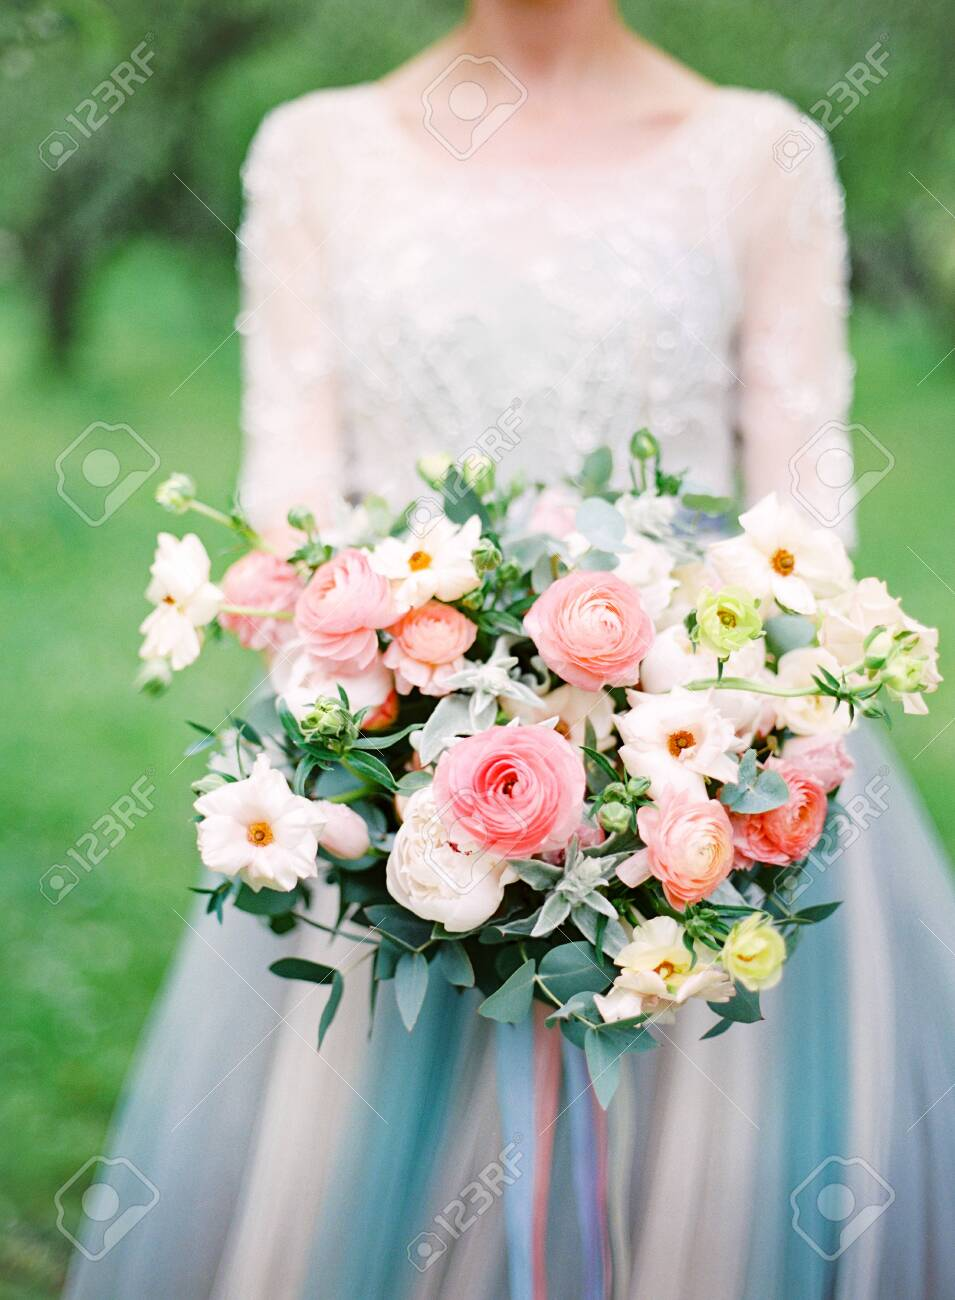 beautiful bride in white wedding dress with a bouquet. analog film photography - 131748875